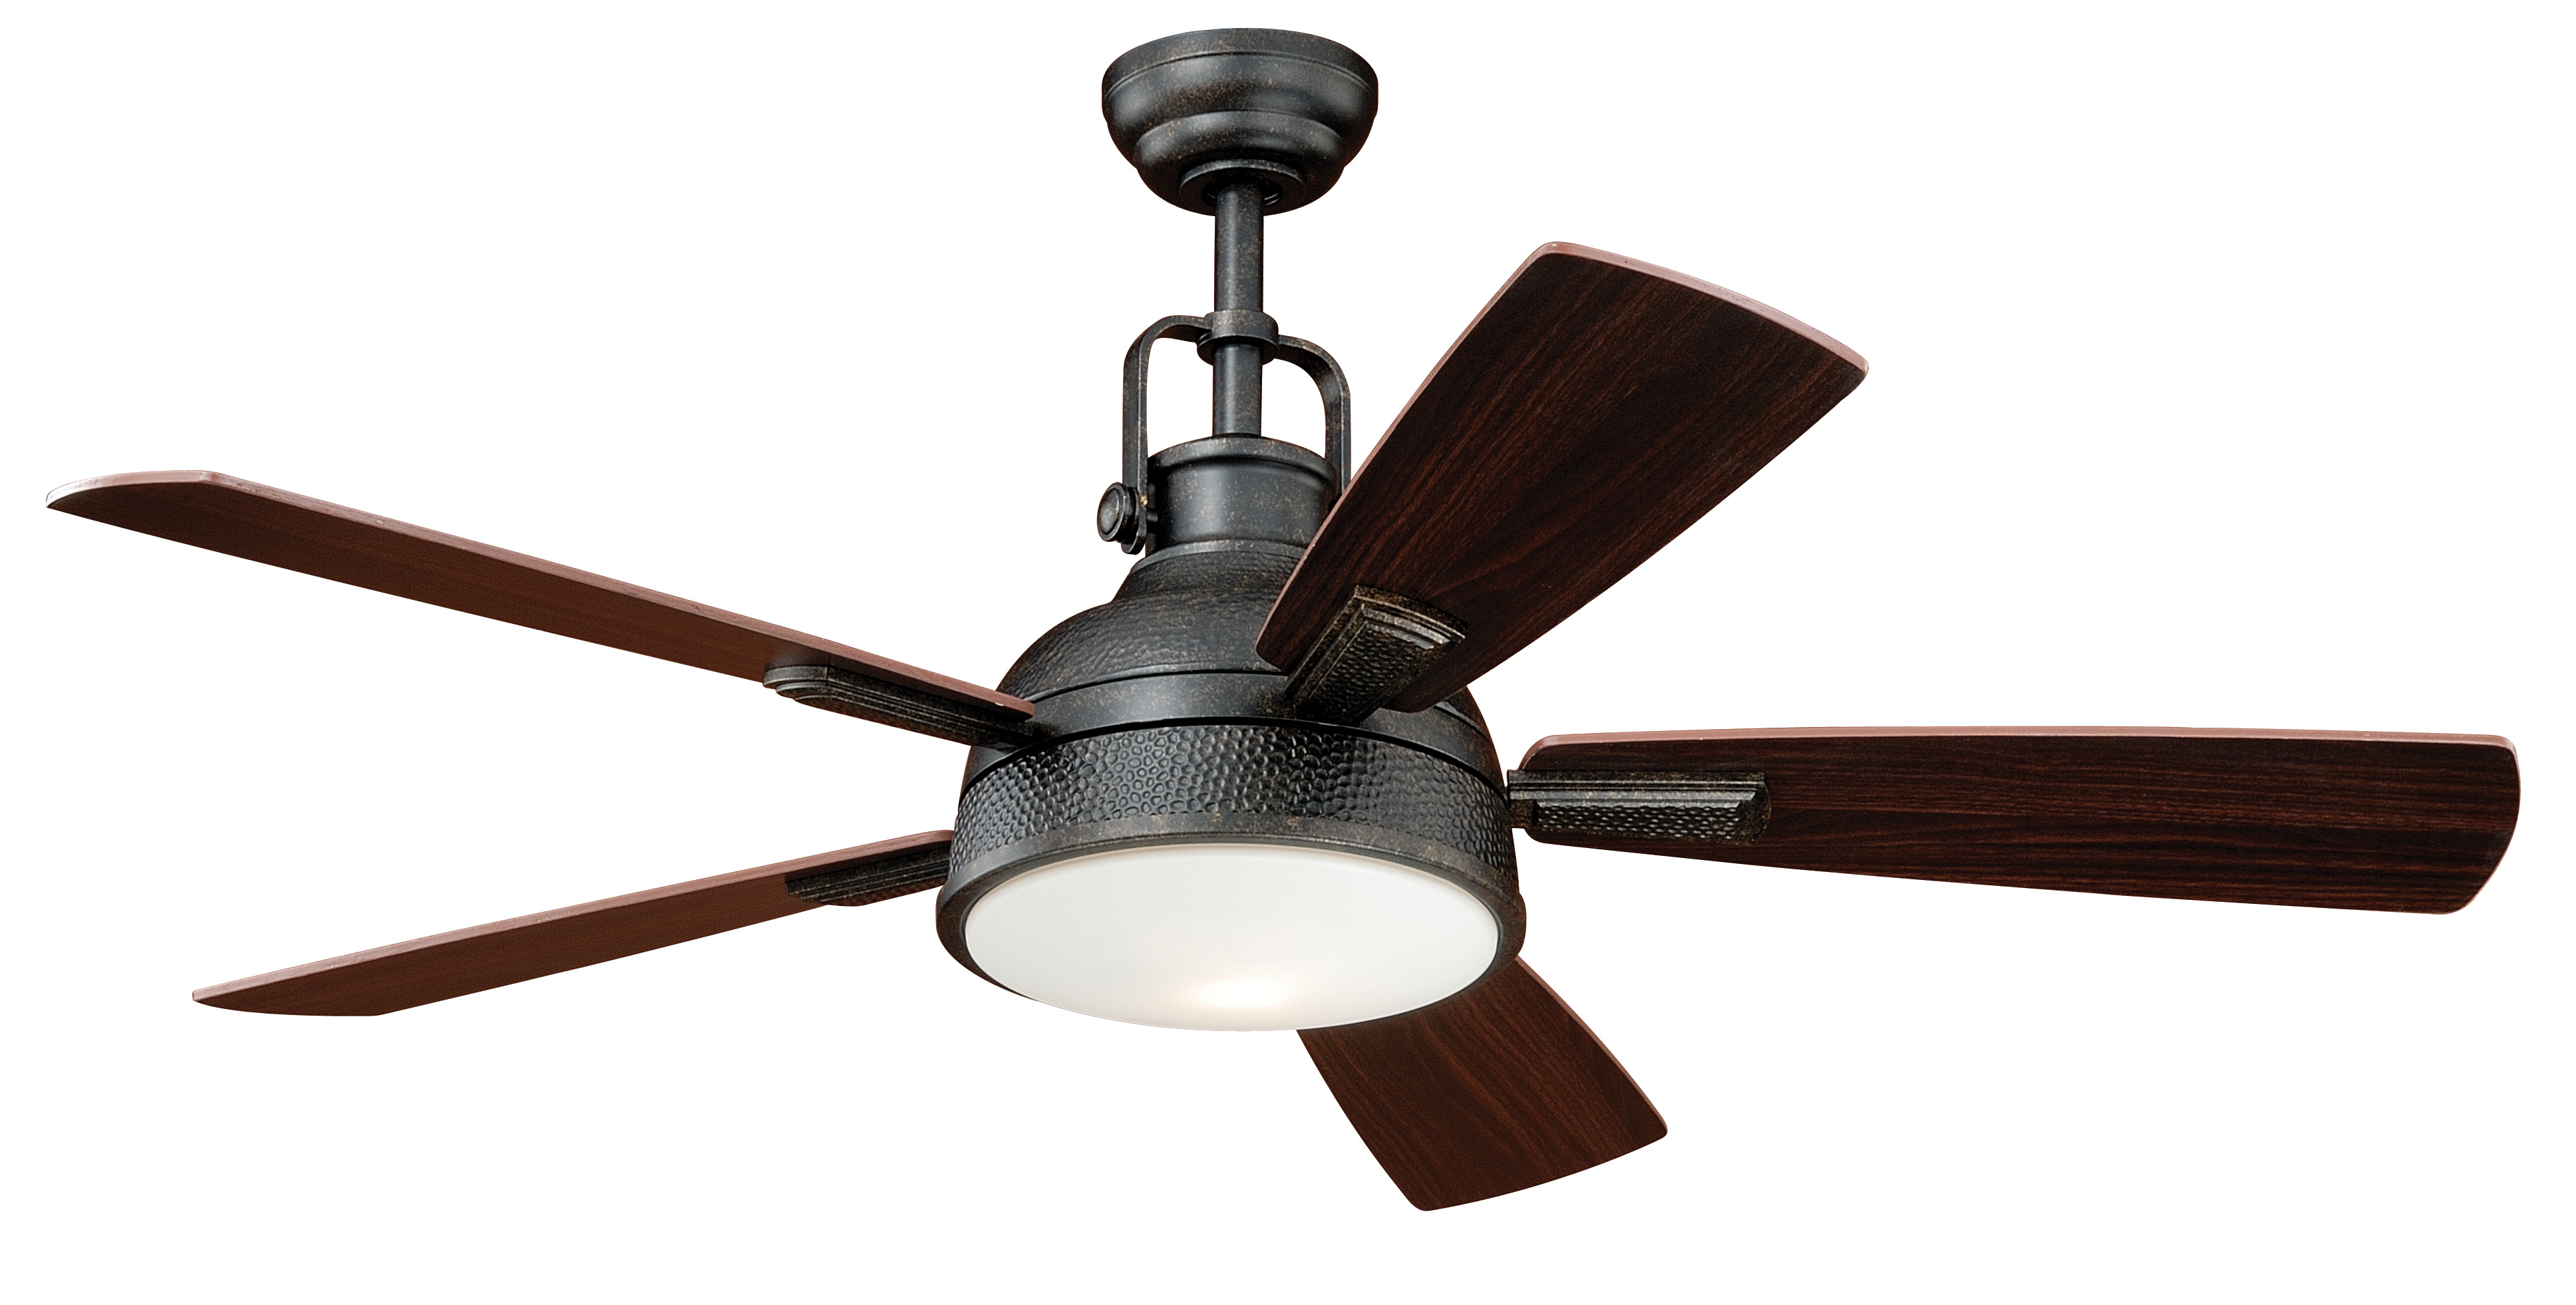 Vaxcel lighting f0027 ceiling fan from the essentia collection Industrial style ceiling fans